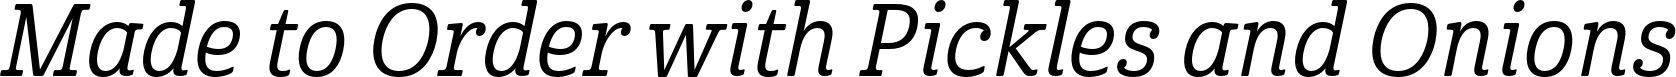 Cabrito Condensed Medium Italic